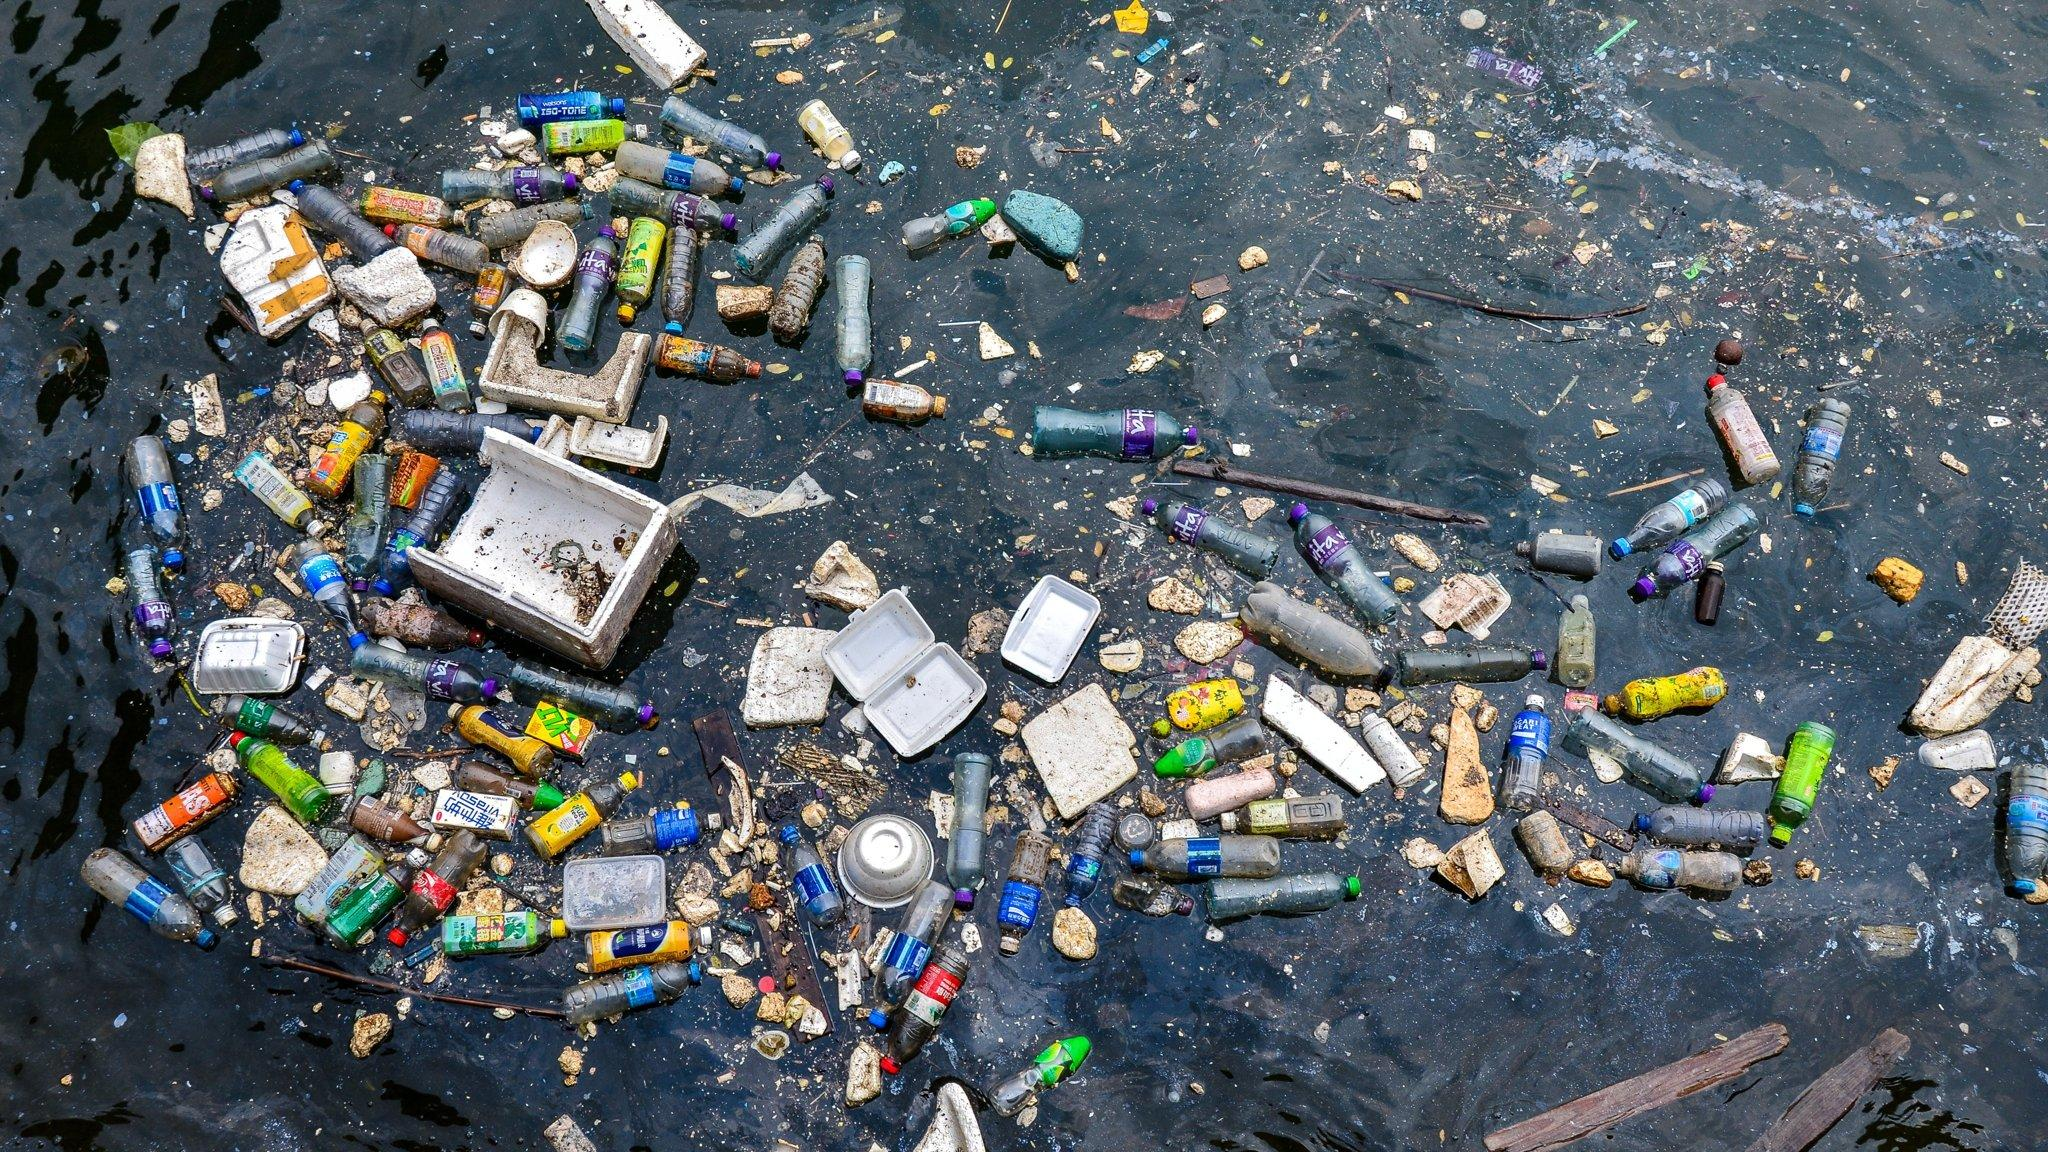 Politicians seek to tackle plastic litter polluting the